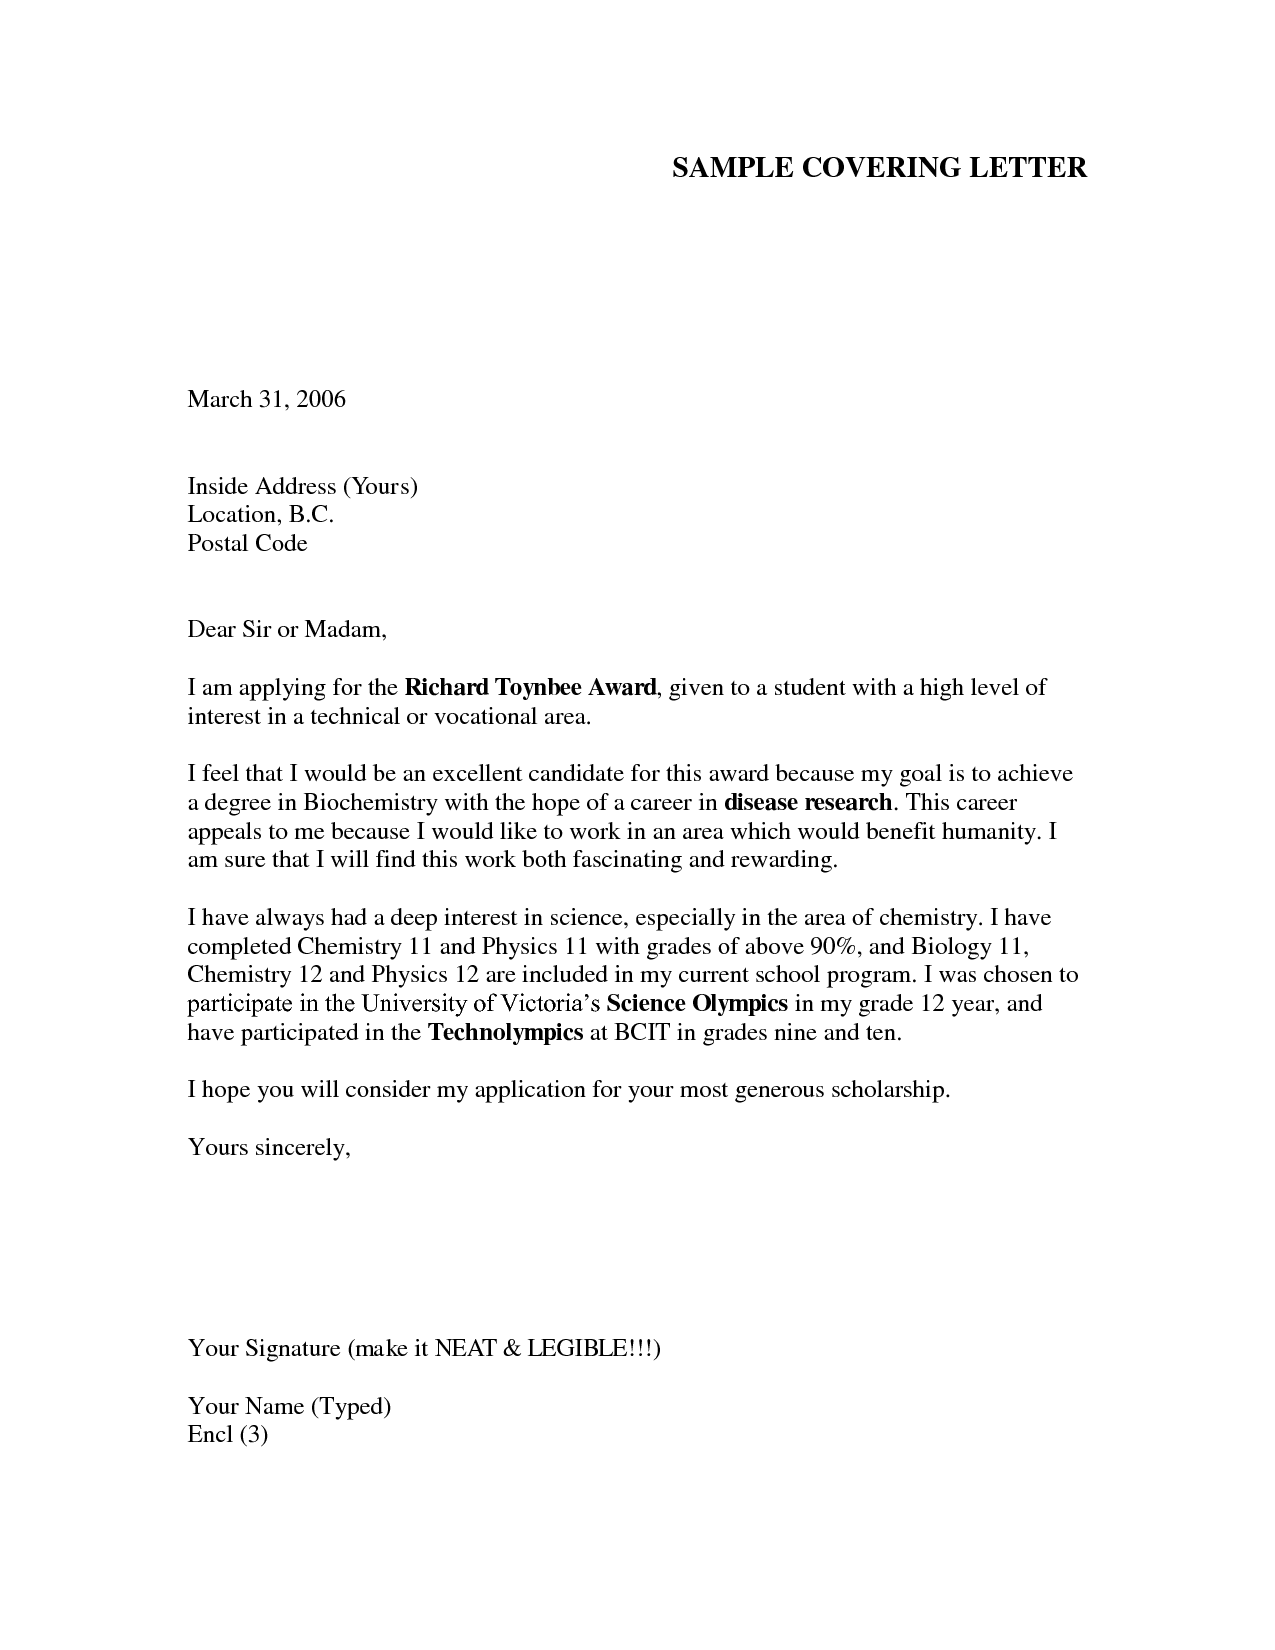 cover letter example for job application cover letter example for job application good cover letter - Job Cover Letters